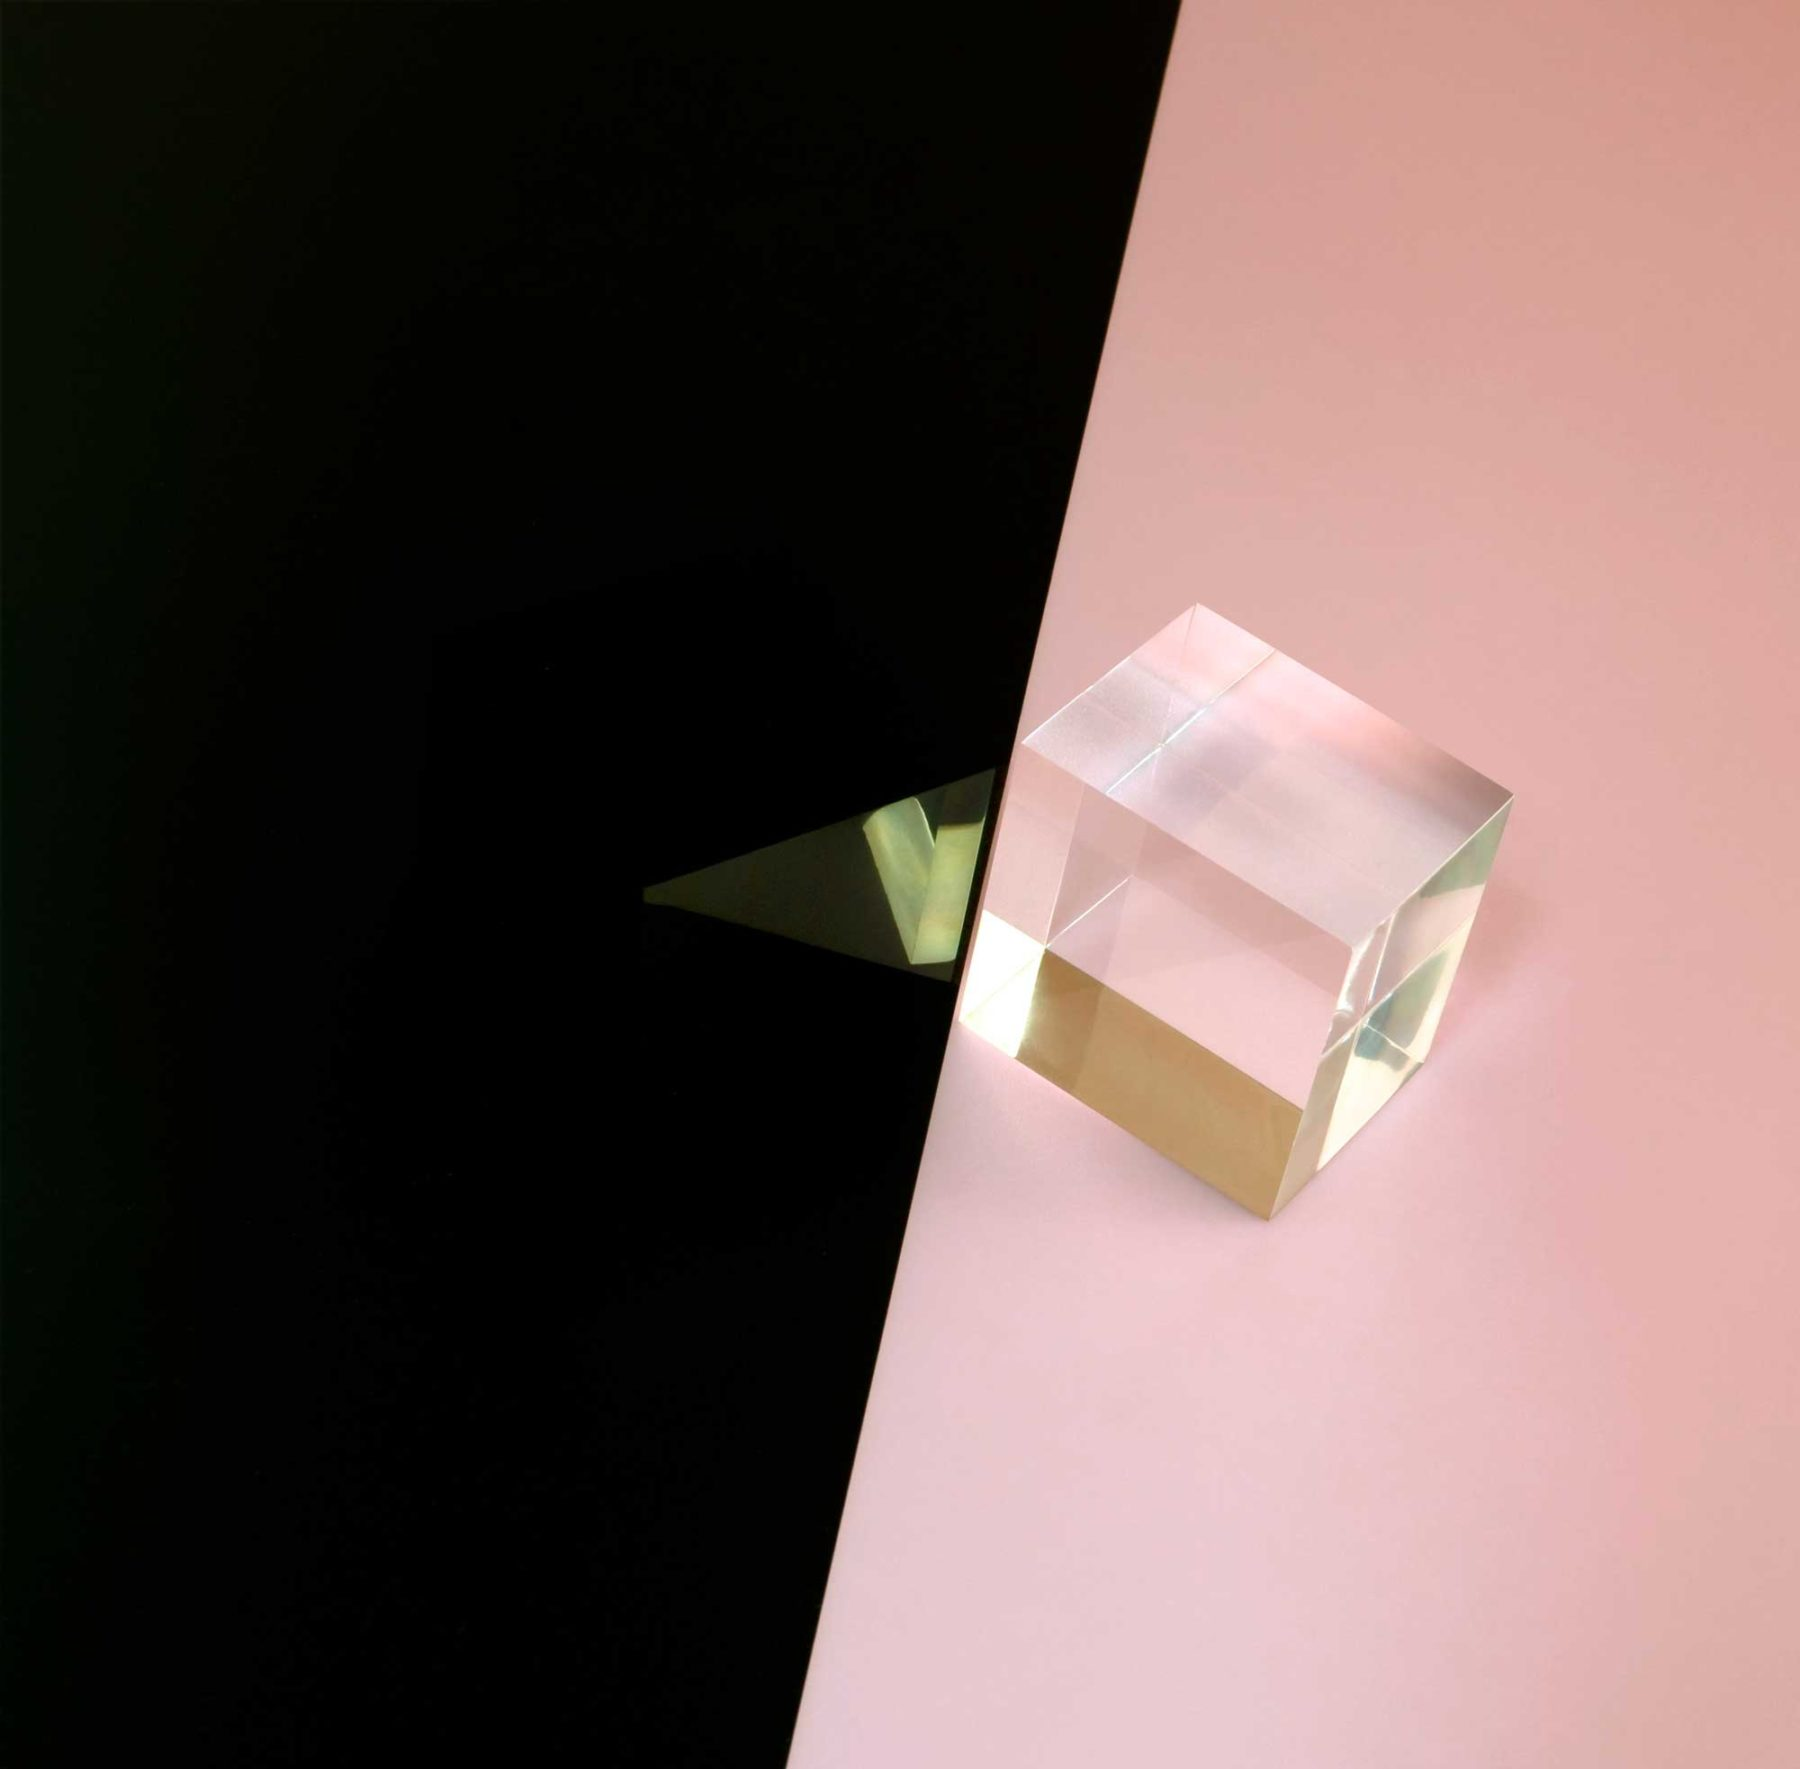 Installation view of Suzanne Mooney, The Edge of Collapse (2011). A clear perspex cube sits on the edge of a split between baby pink and black.